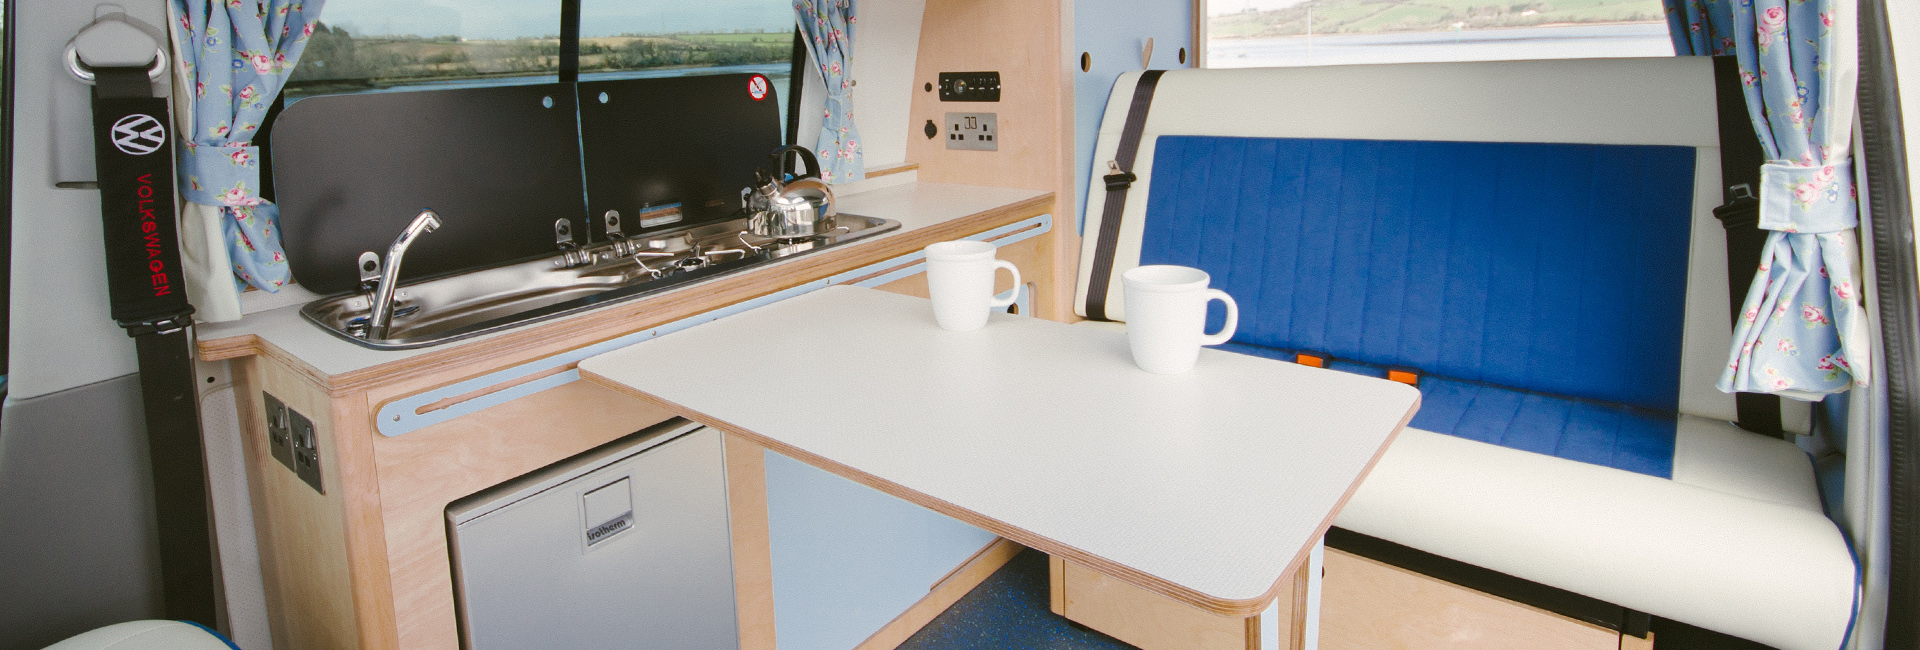 bright fresh campervan eco plywood conversion in white and blue with rock and roll bed, built in fridge, sink, gas hob, fold away table, clever storage parked in by beautiful sea